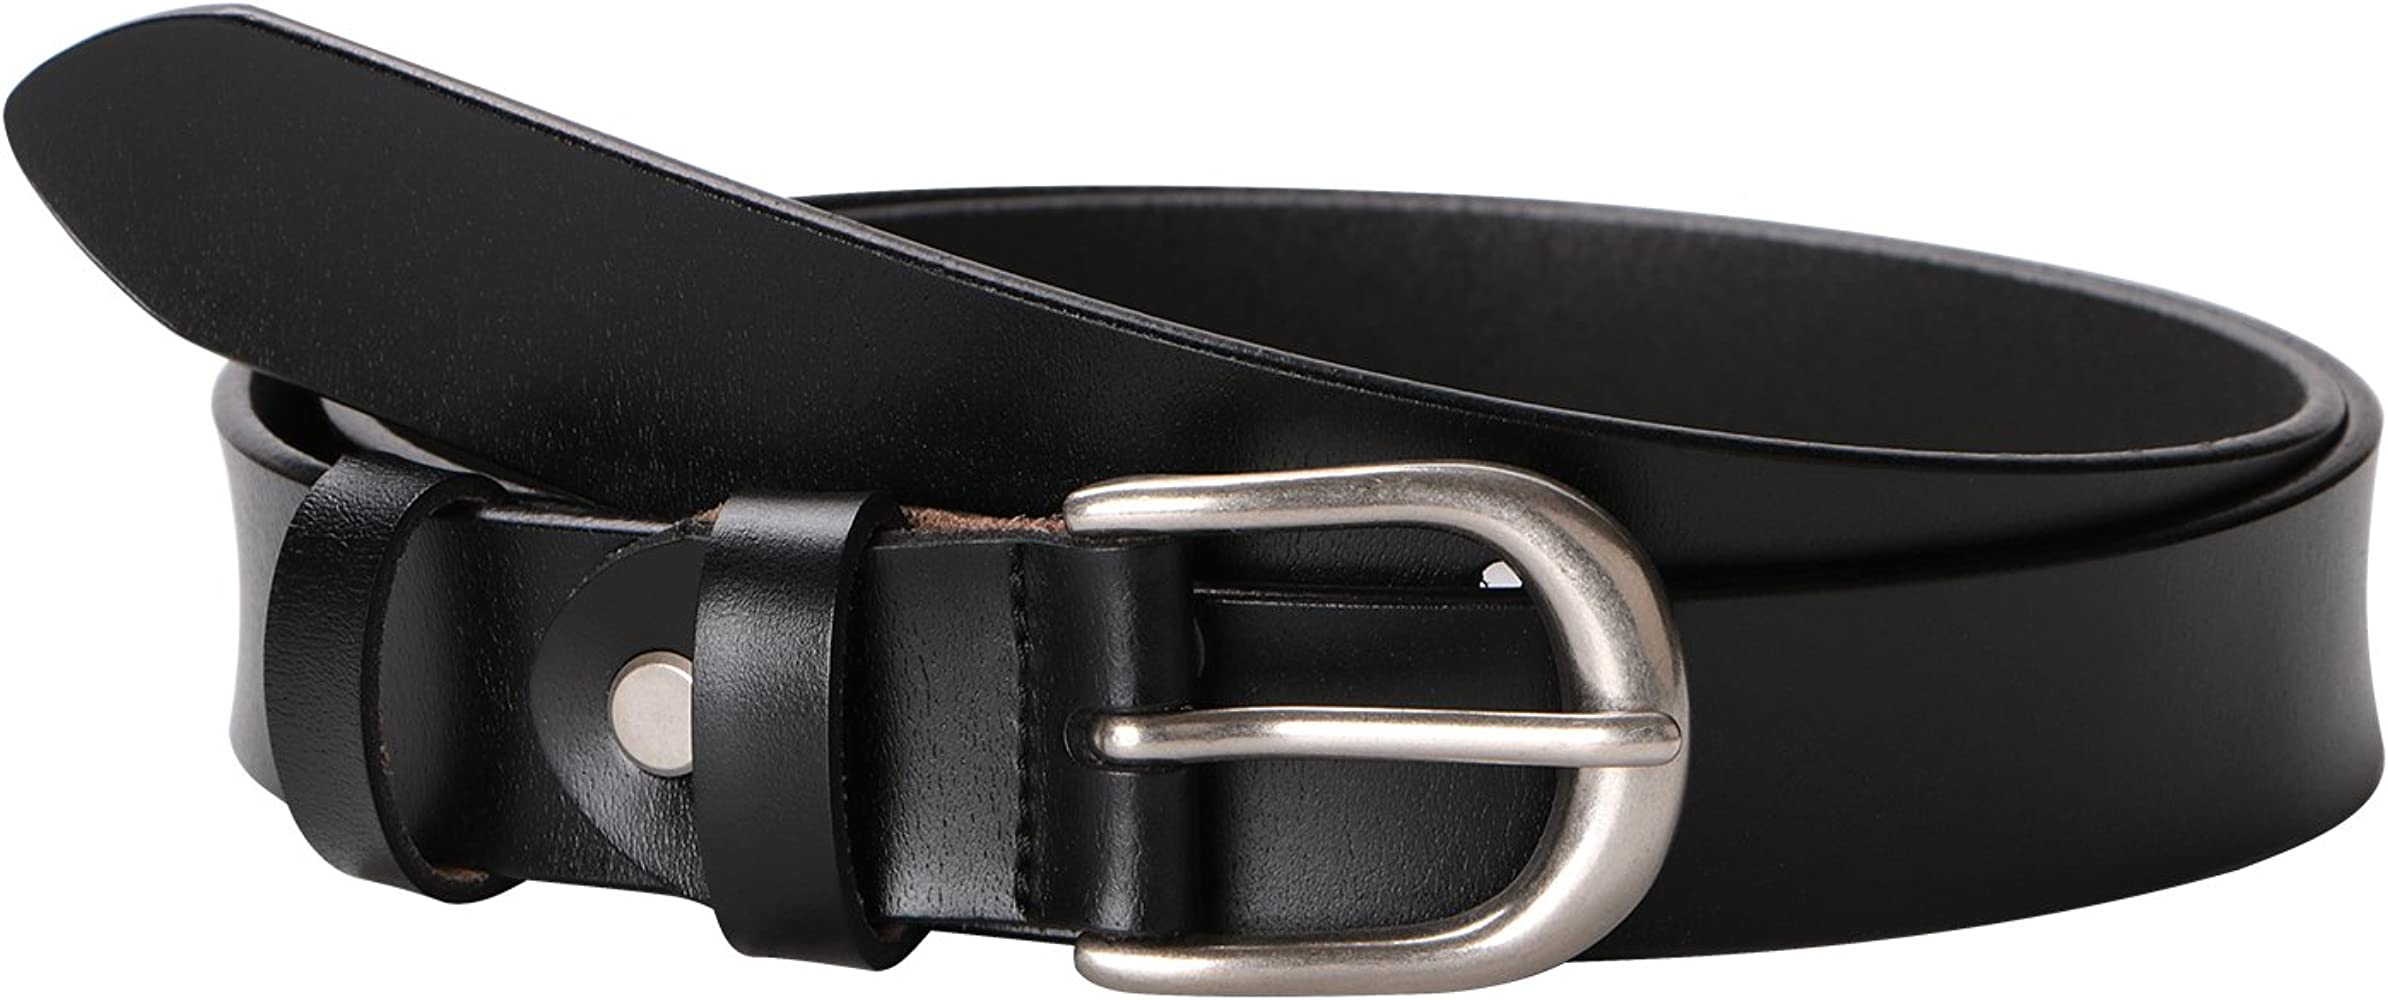 Women Skinny Leather Belt Thin Jeans Belts With Silver Prong Buckle Muti-Colors